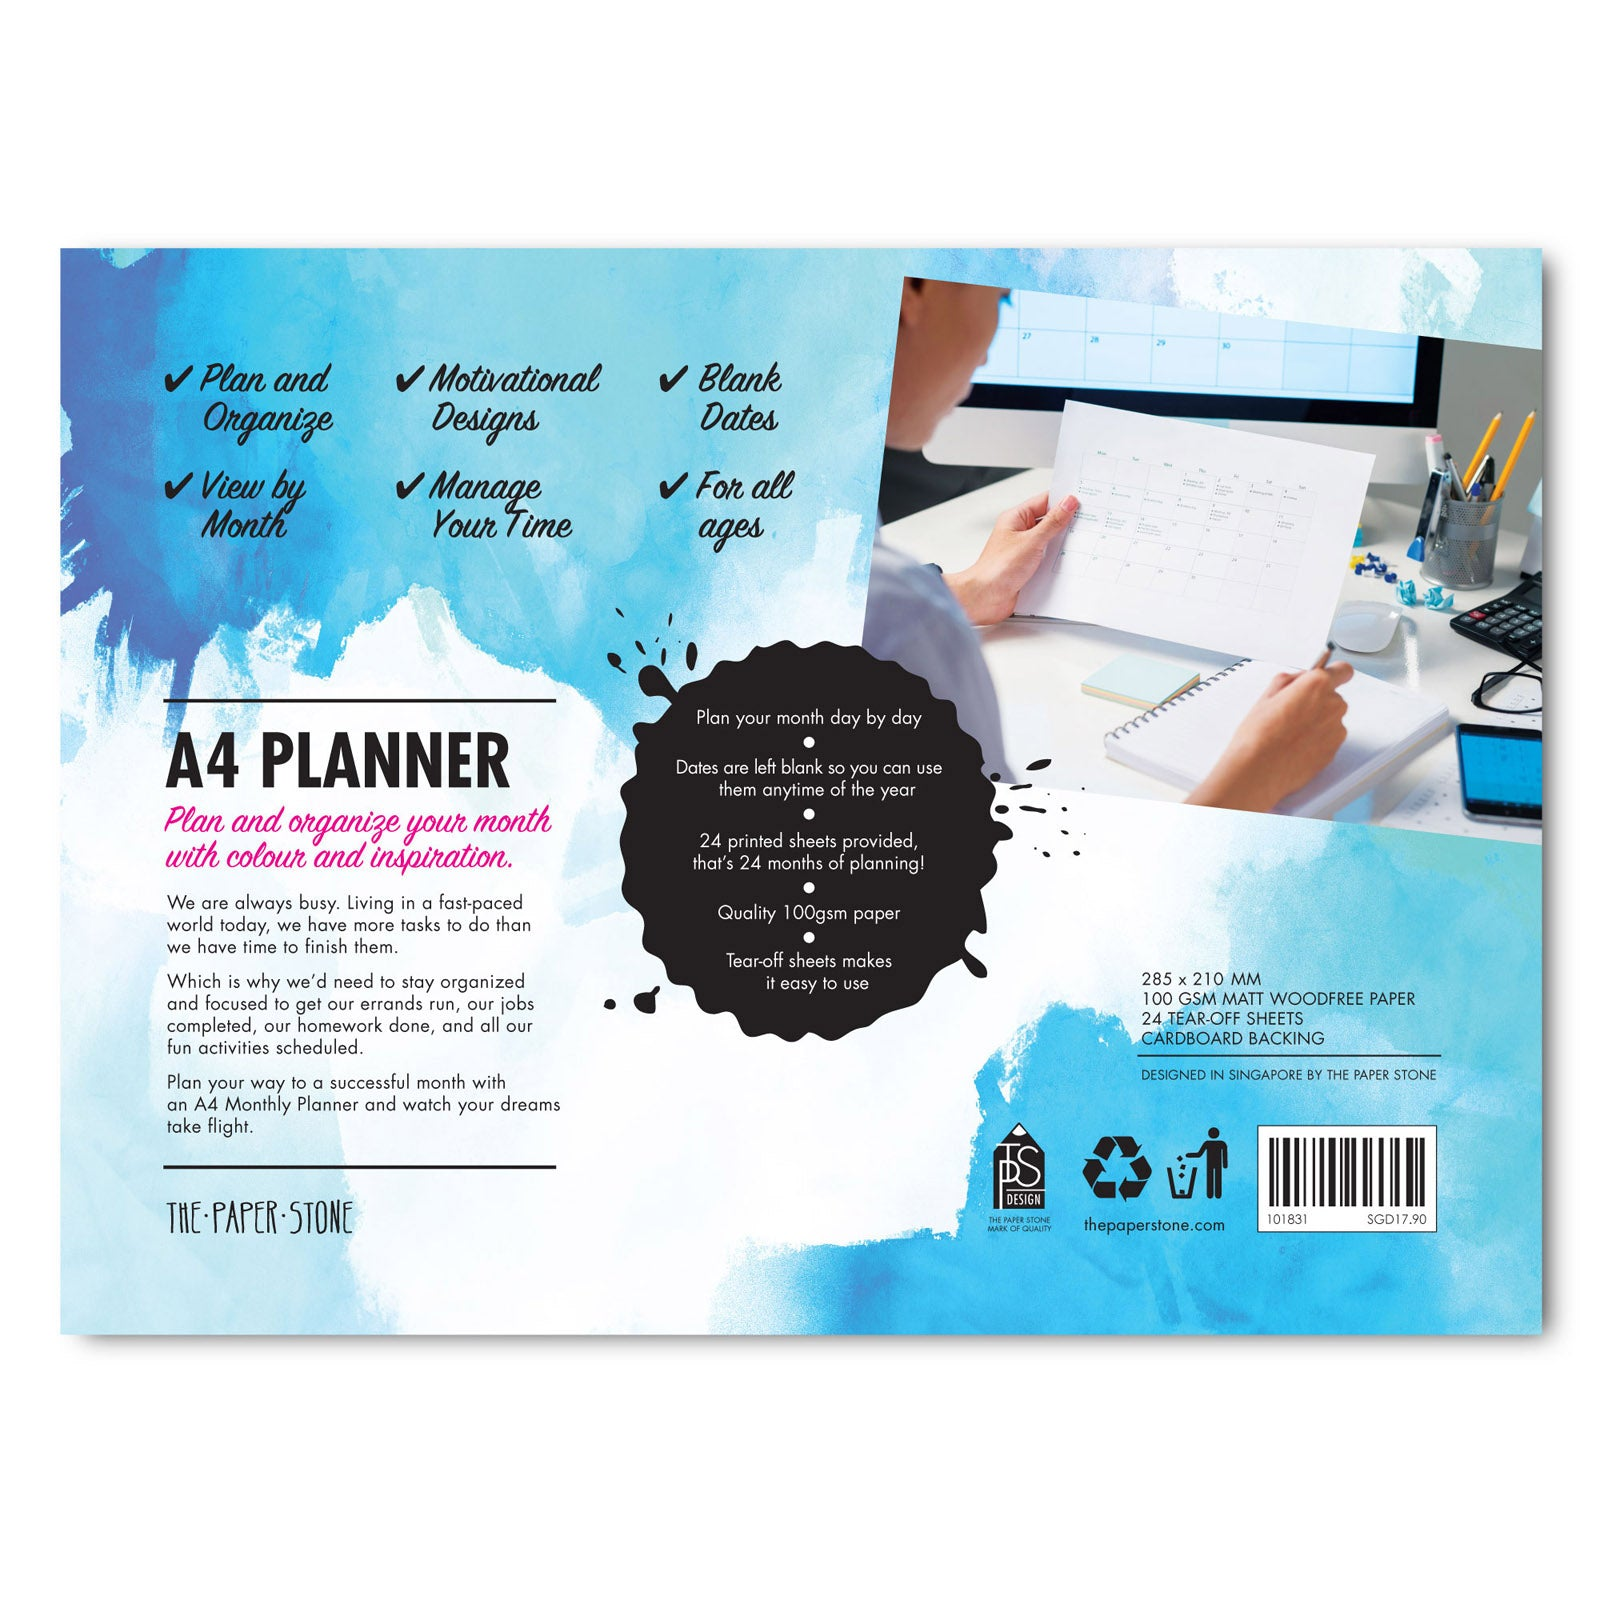 A4 Planner - Always busy watermelons